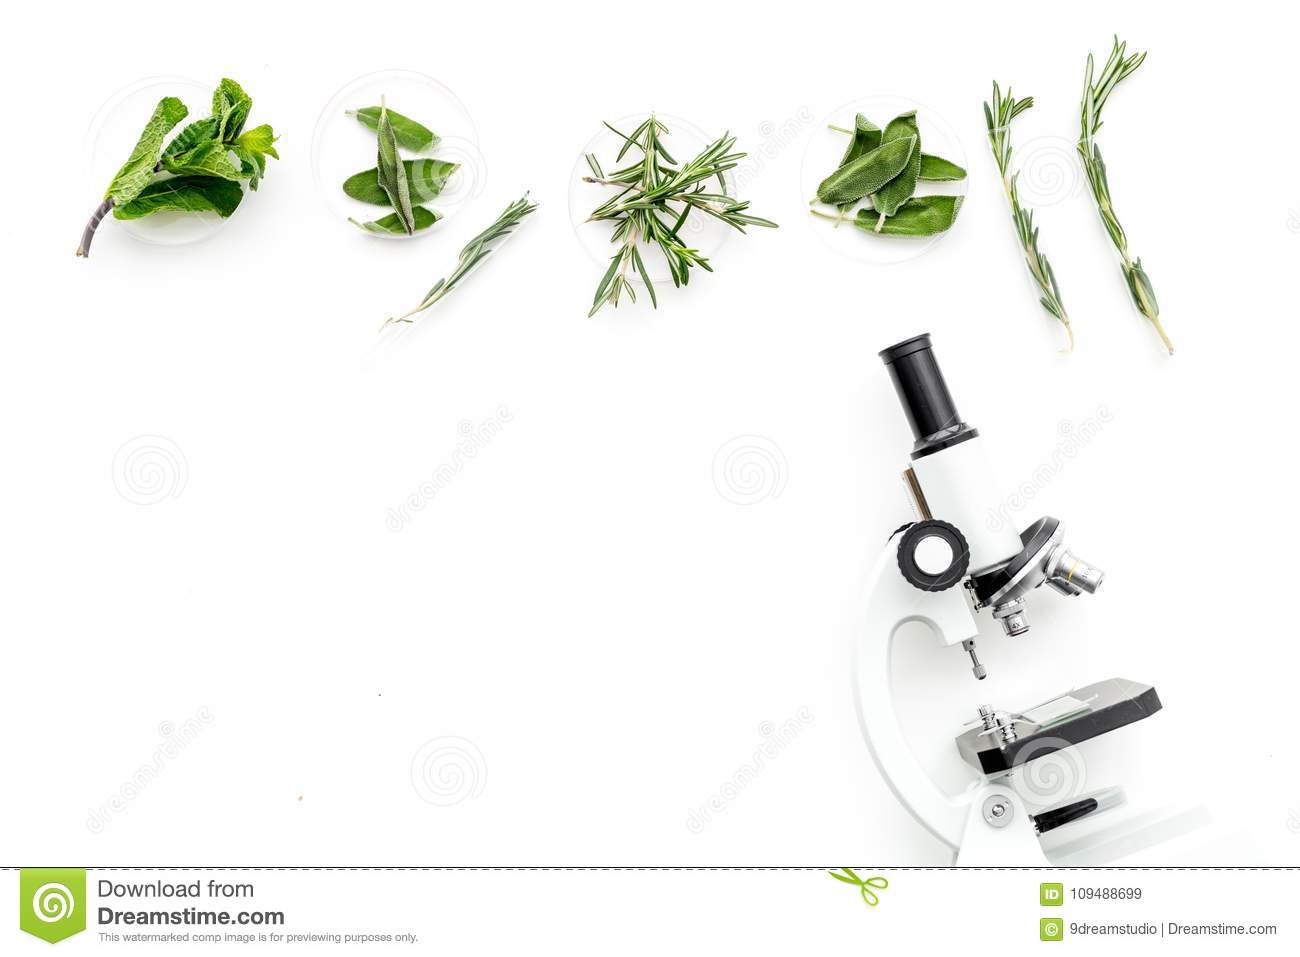 hight resolution of food analysis pesticides free vegetables herbs rosemary mint near rosemary flower rosemary herb diagram